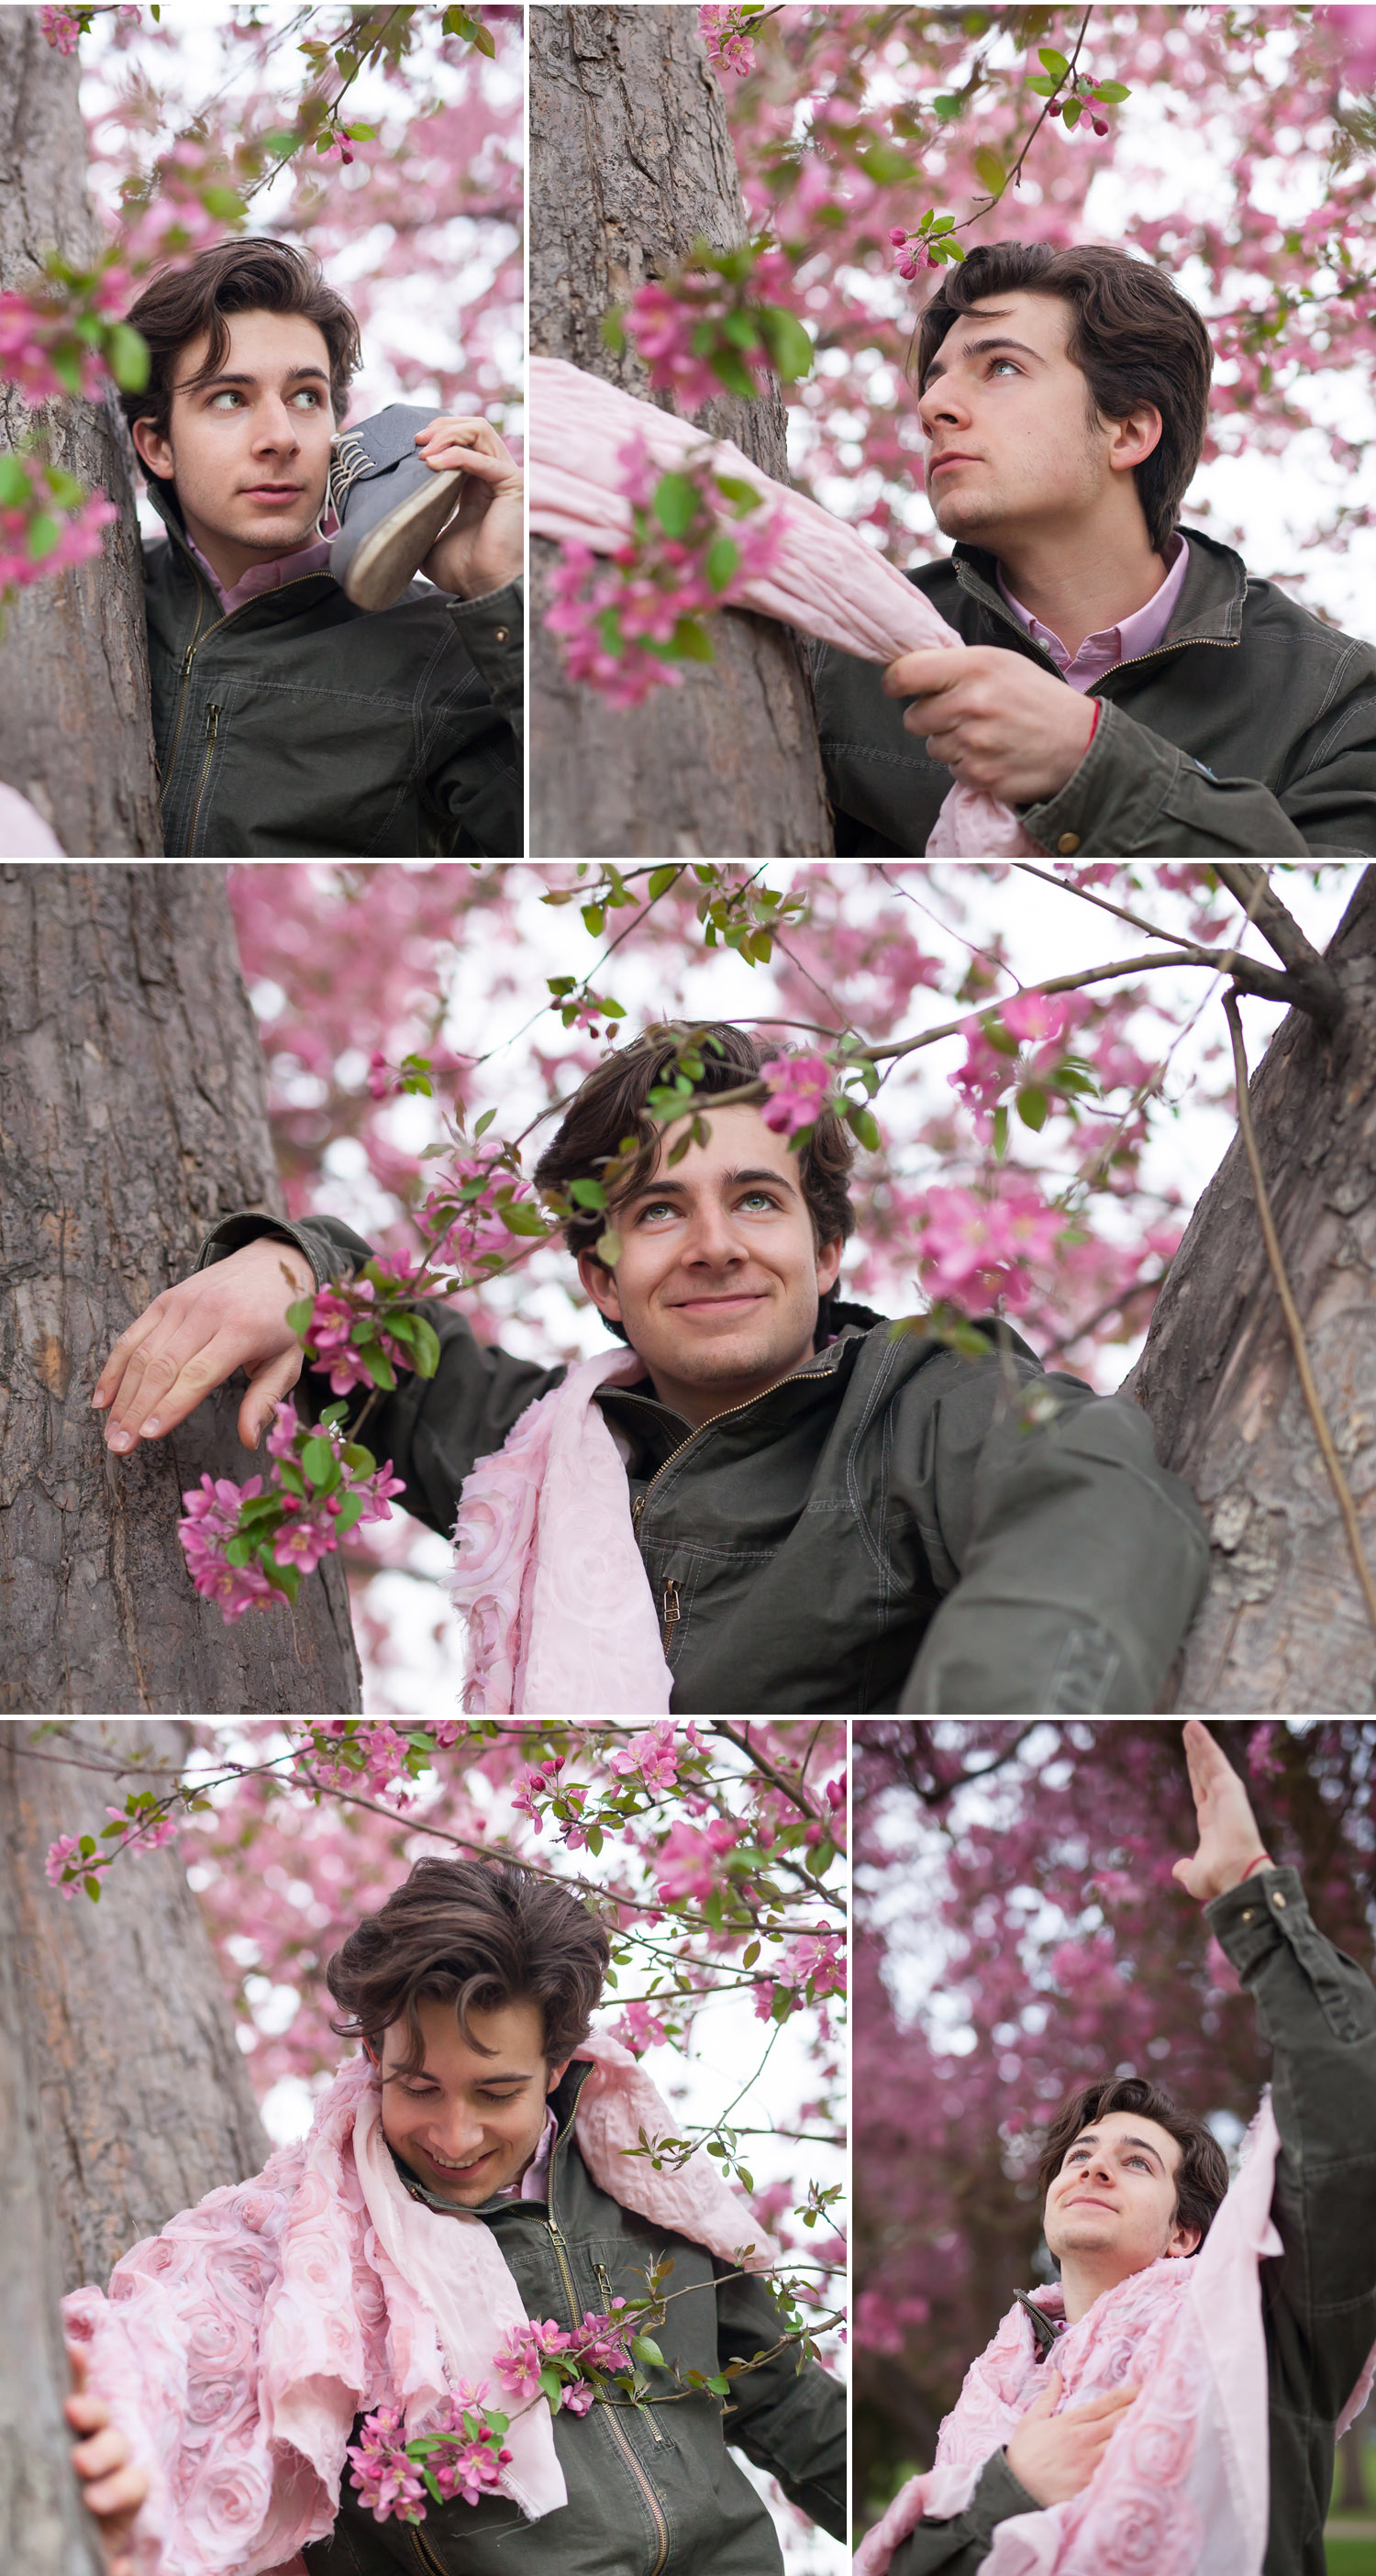 Teen boy being silly while taking pictures in pink spring flowers, by Denver photographer Jennifer Koskinen, Merritt Portrait Studio